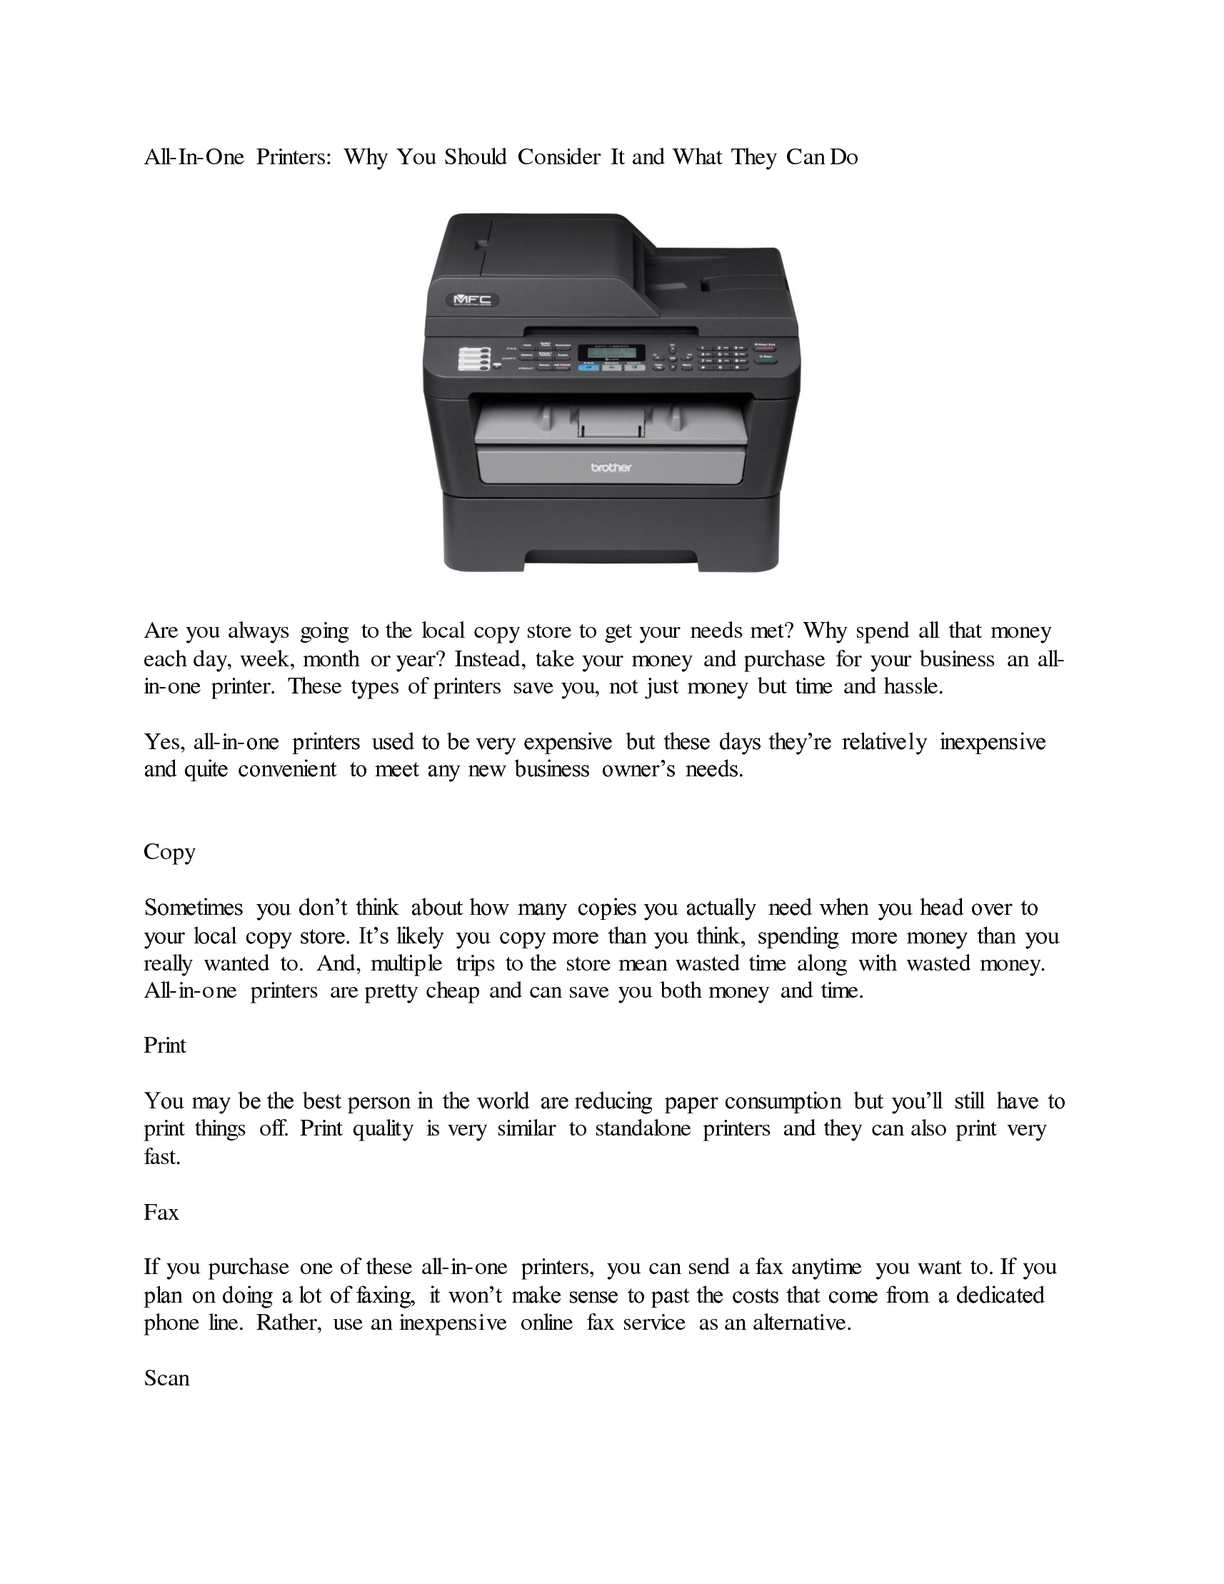 Calaméo - All-In-One Printers: Why You Should Consider It and What